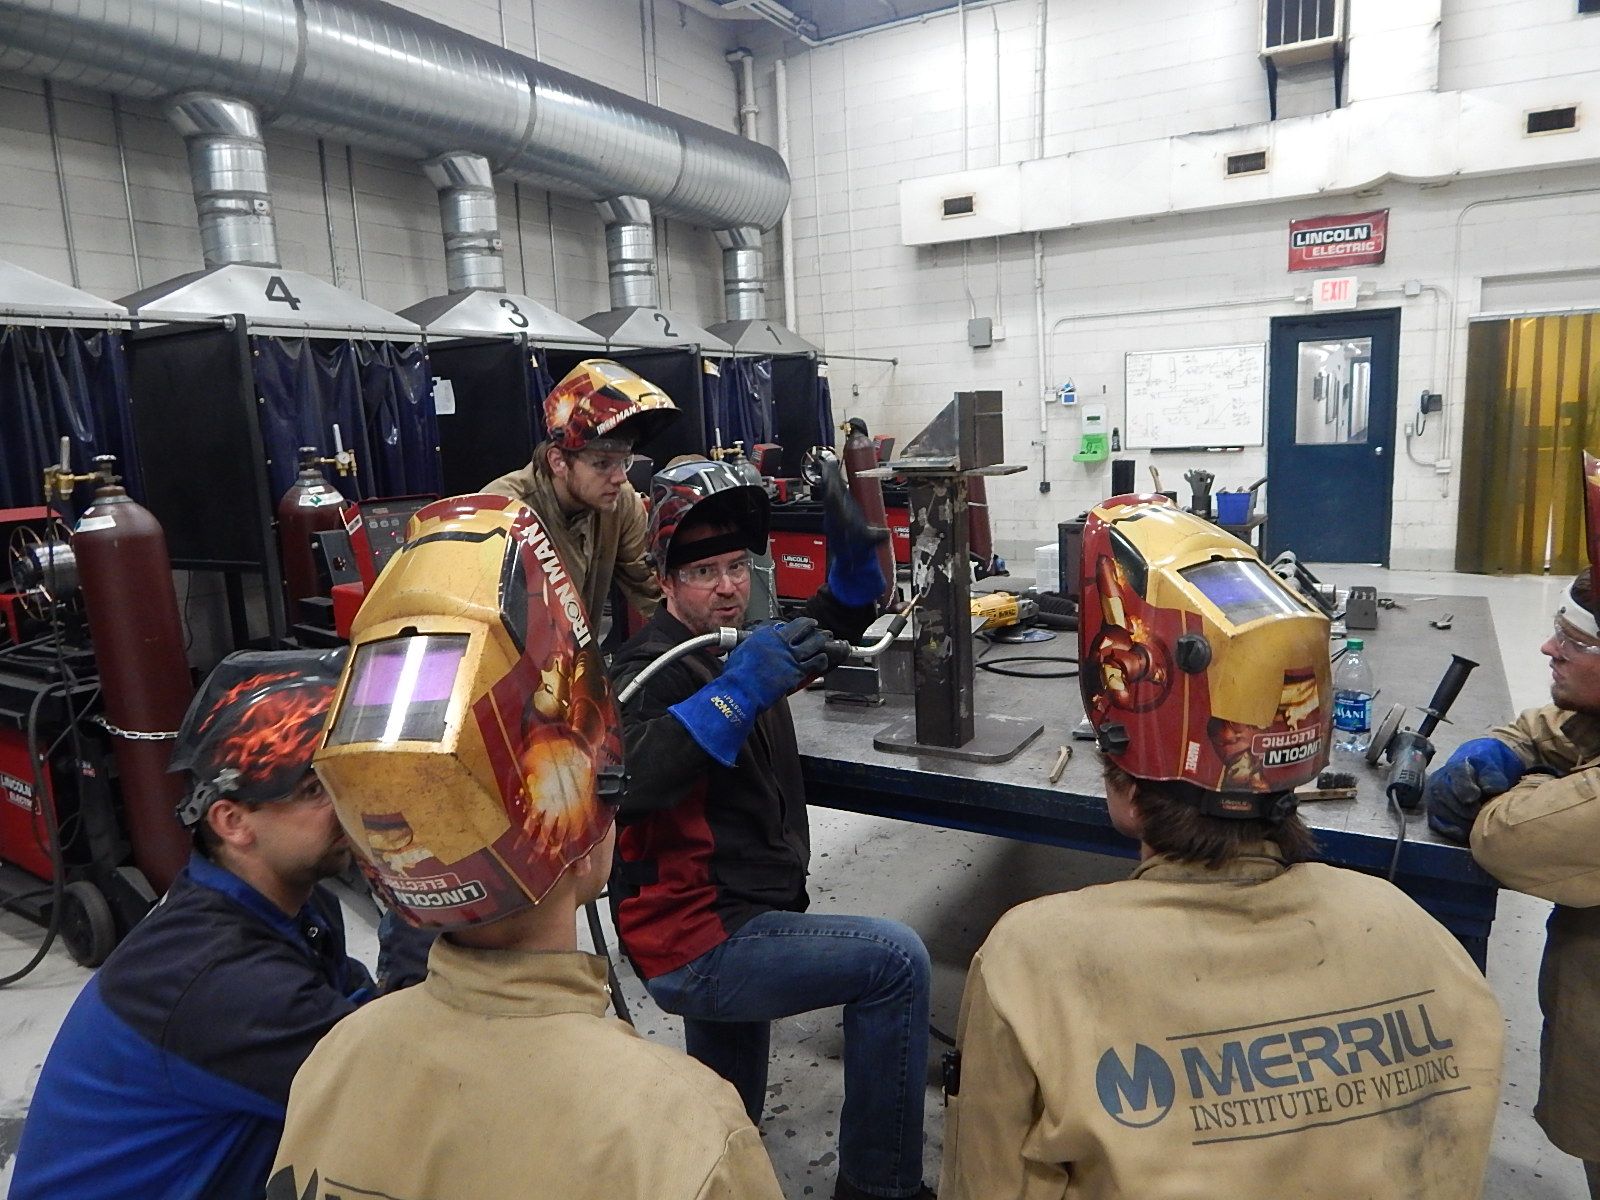 Merrill Institute - Welding Programs